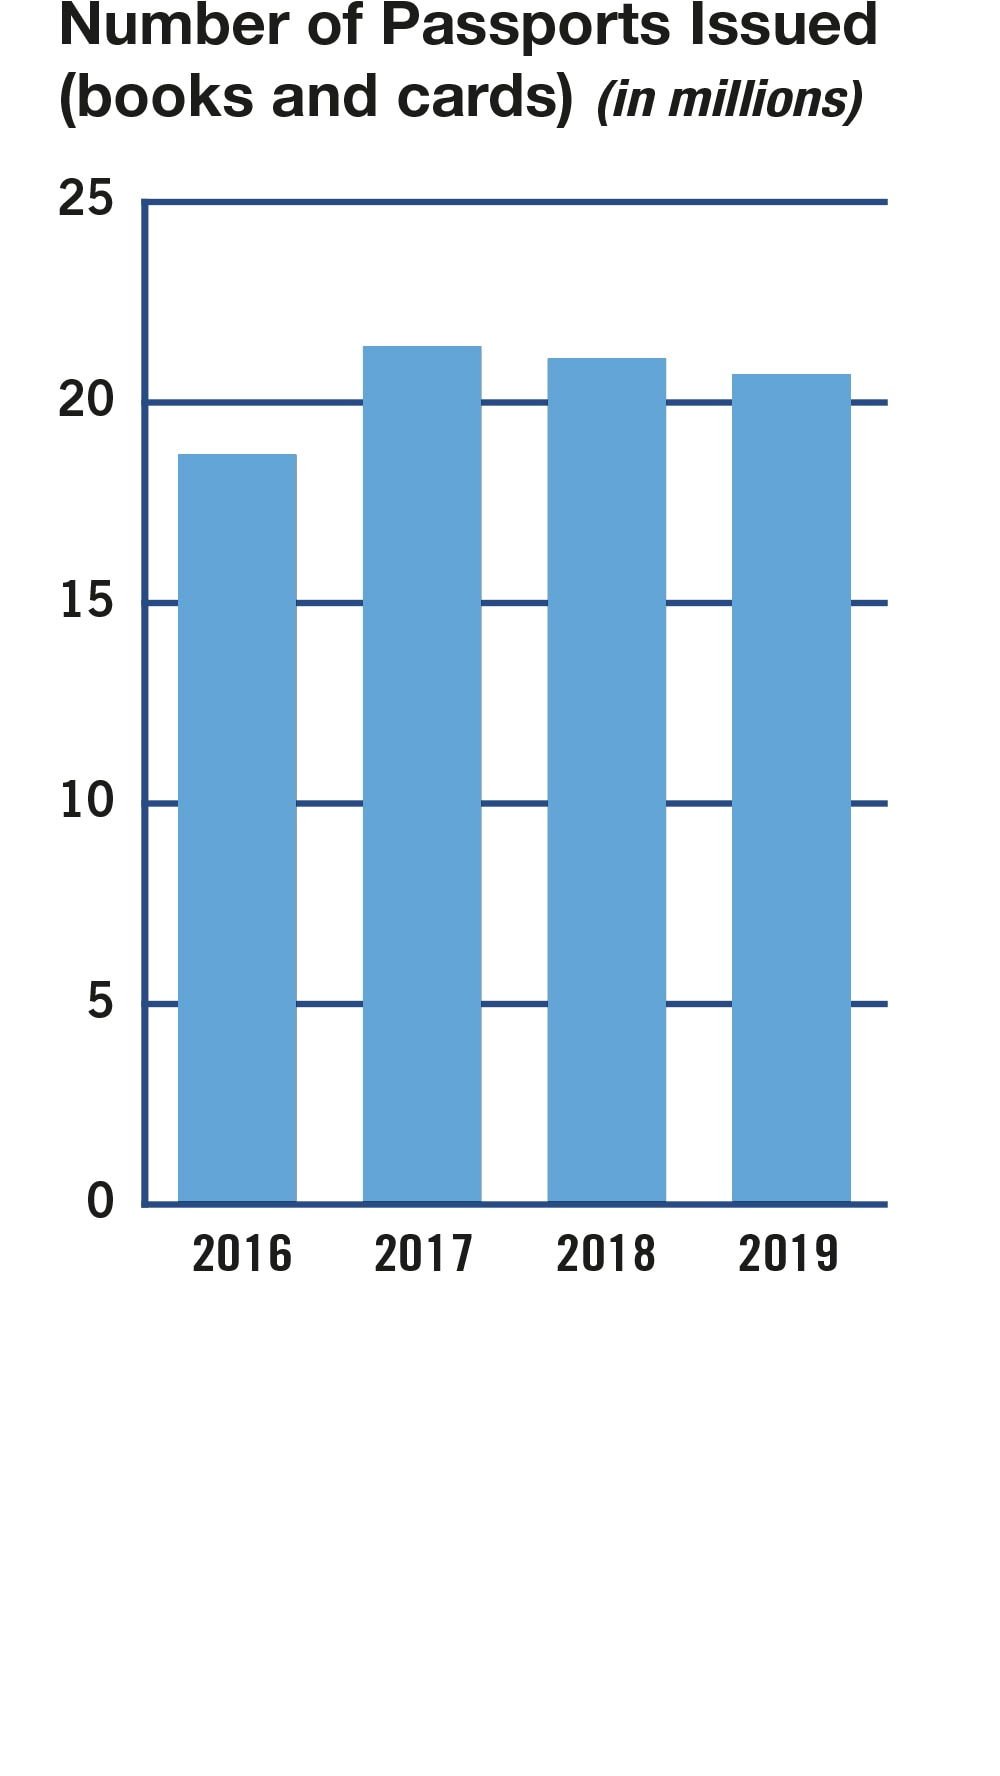 Bar chart summarizing the number of passports issued including books and cards for fiscal years 2016 to 2019. Values are as follows: FY 2016: 18.7 million. FY 2017: 21.4 million. FY 2018: 21.1 million. FY 2019: 20.7 million.